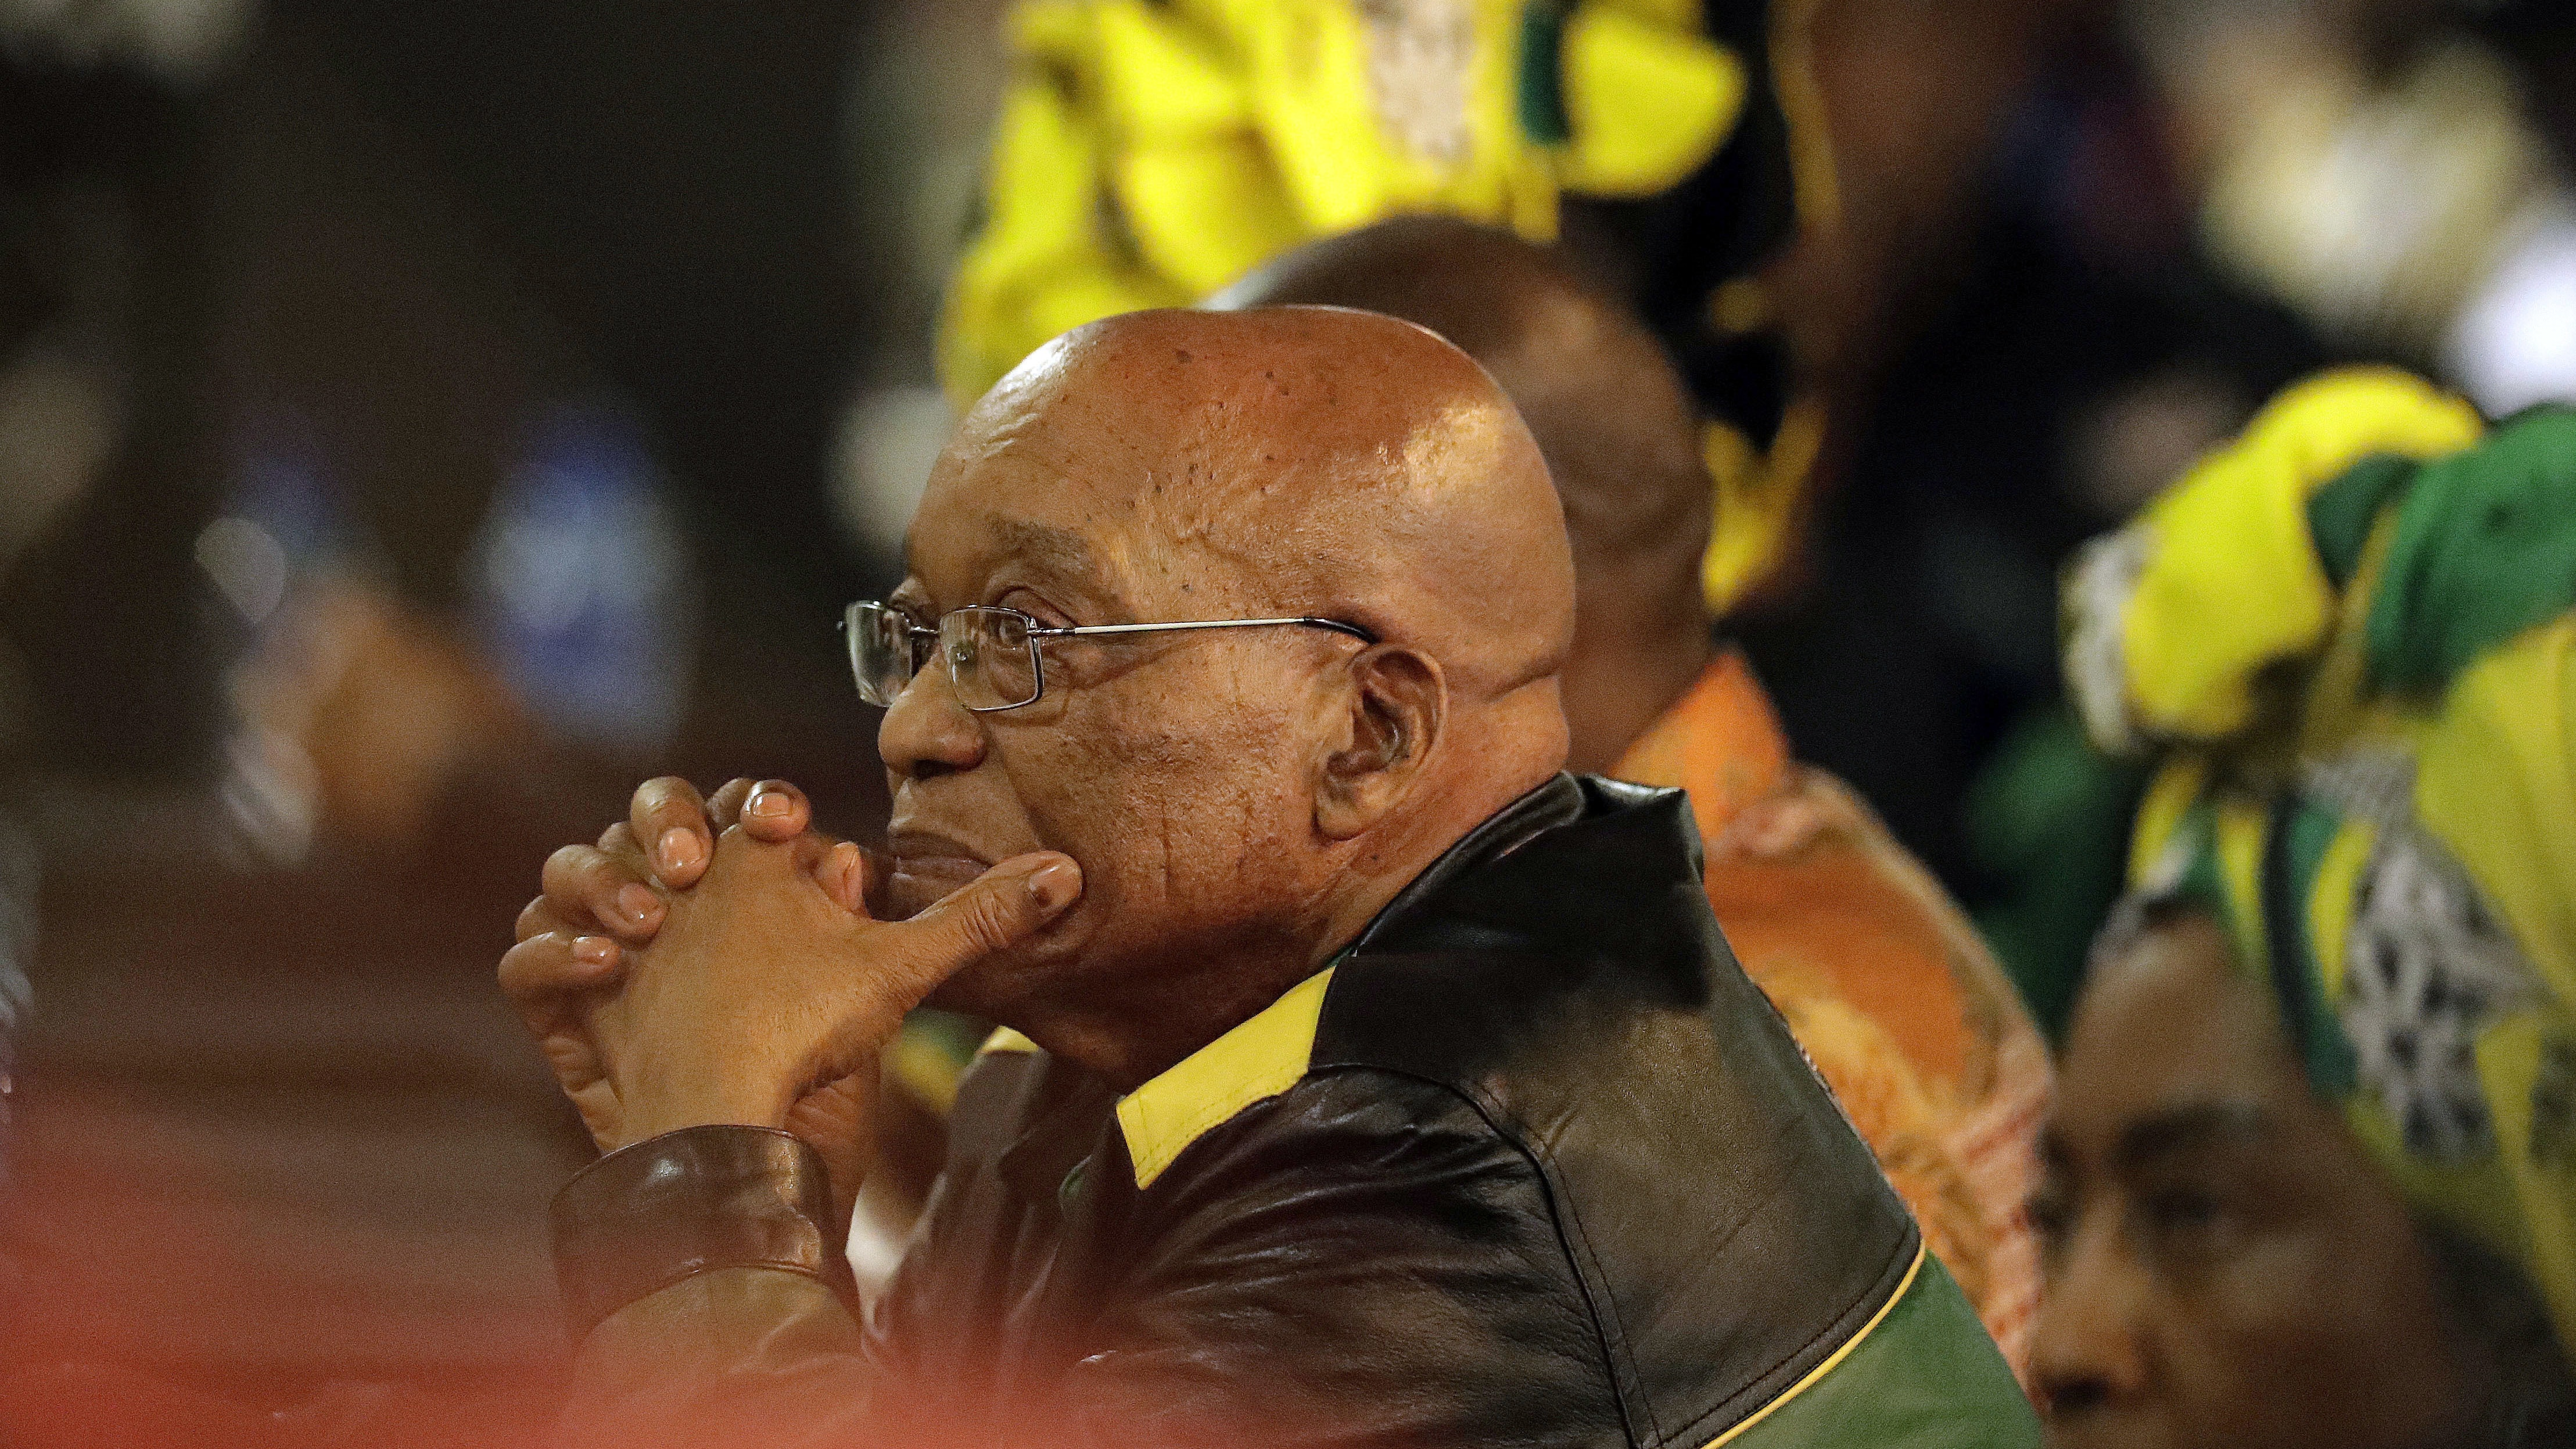 Motion of no confidence in Zuma scheduled for 22 Feb